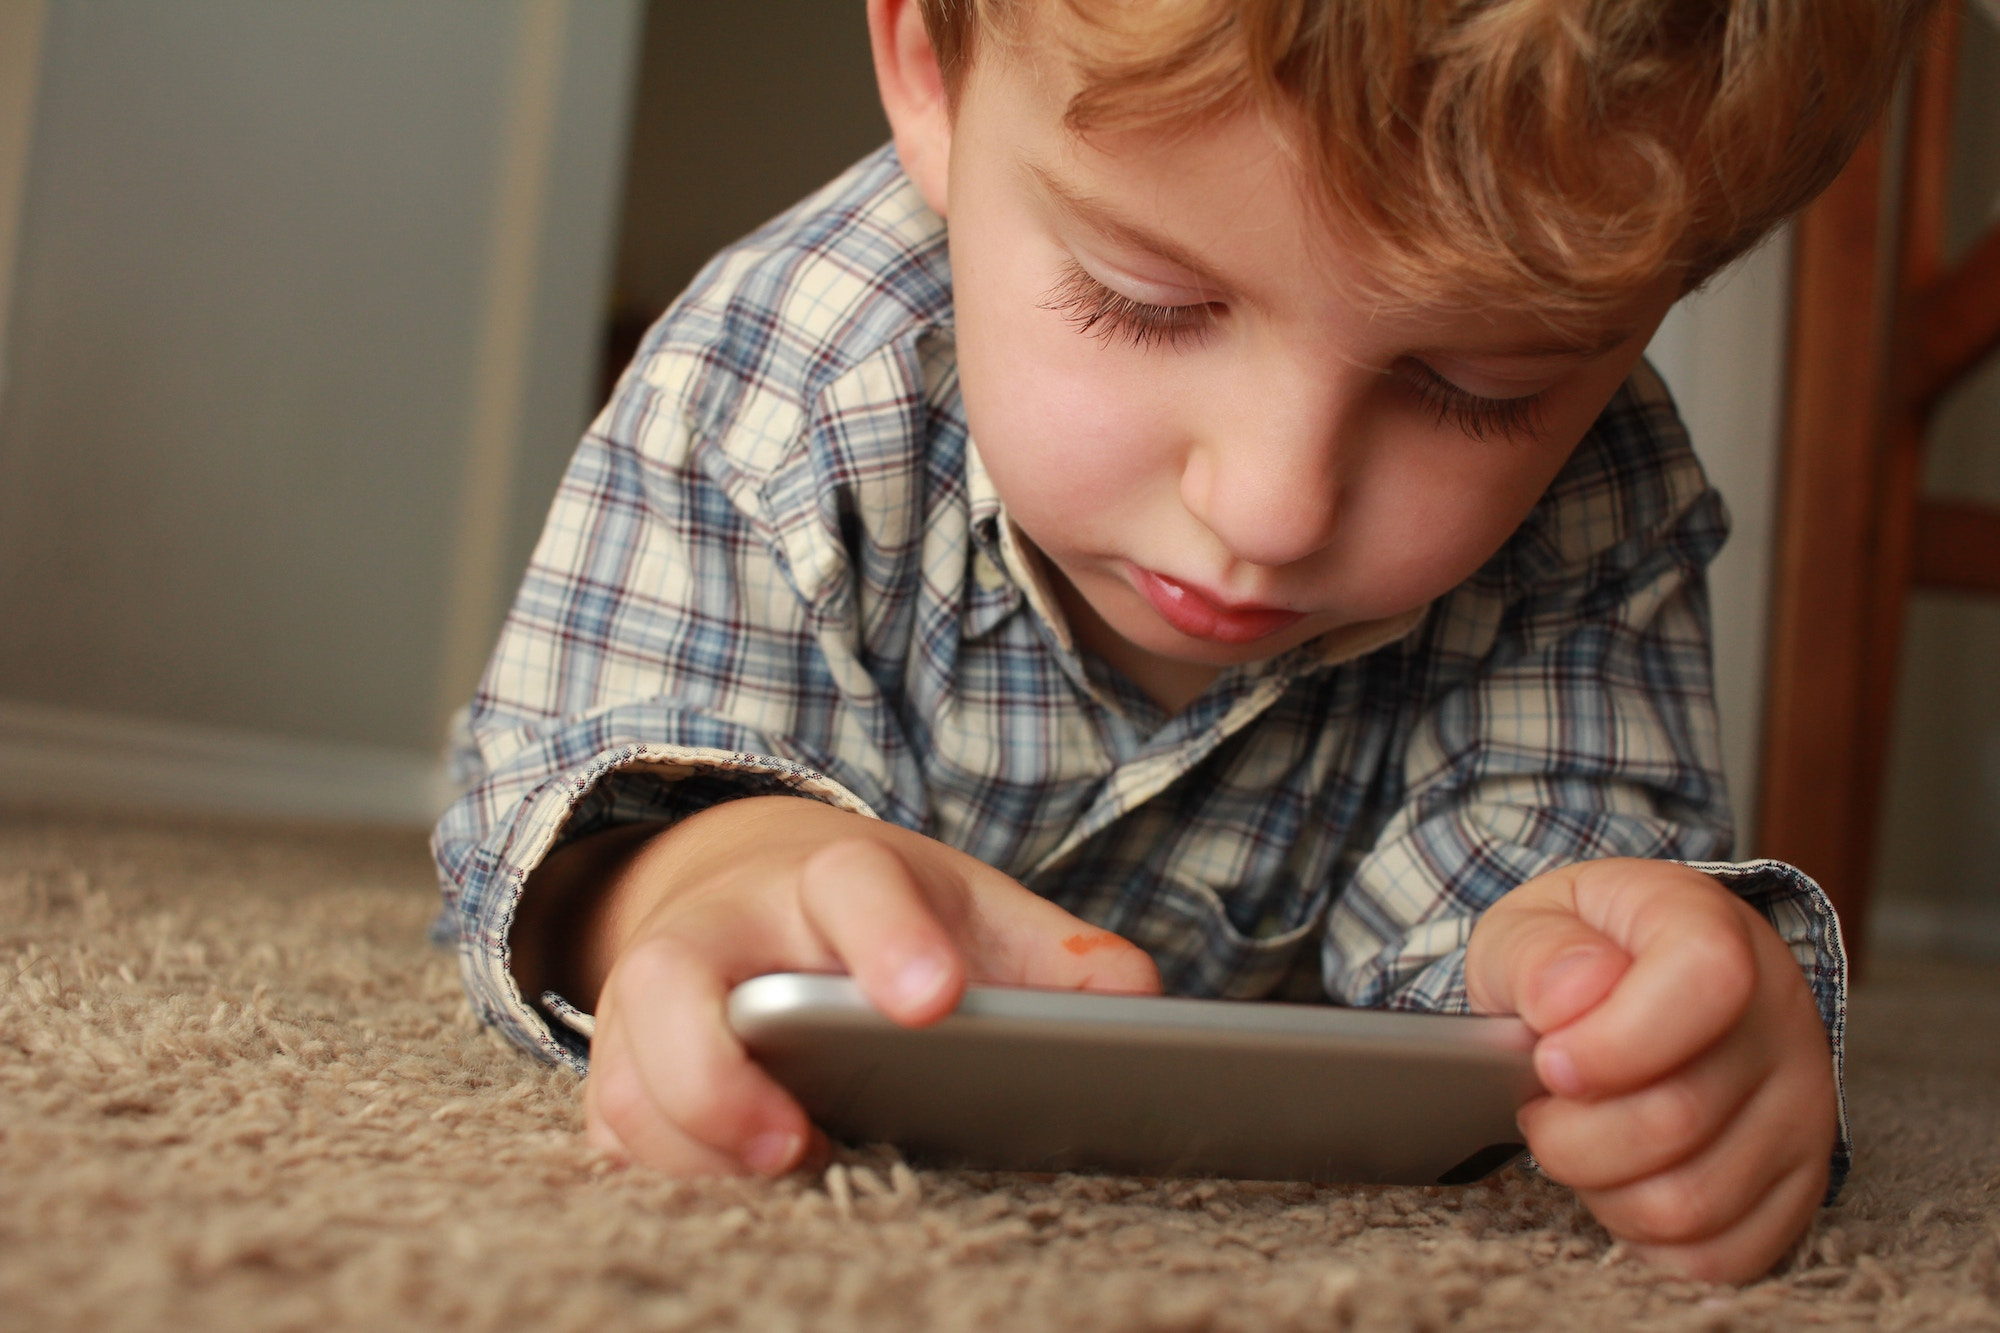 Protect Your Child's Online Reputation